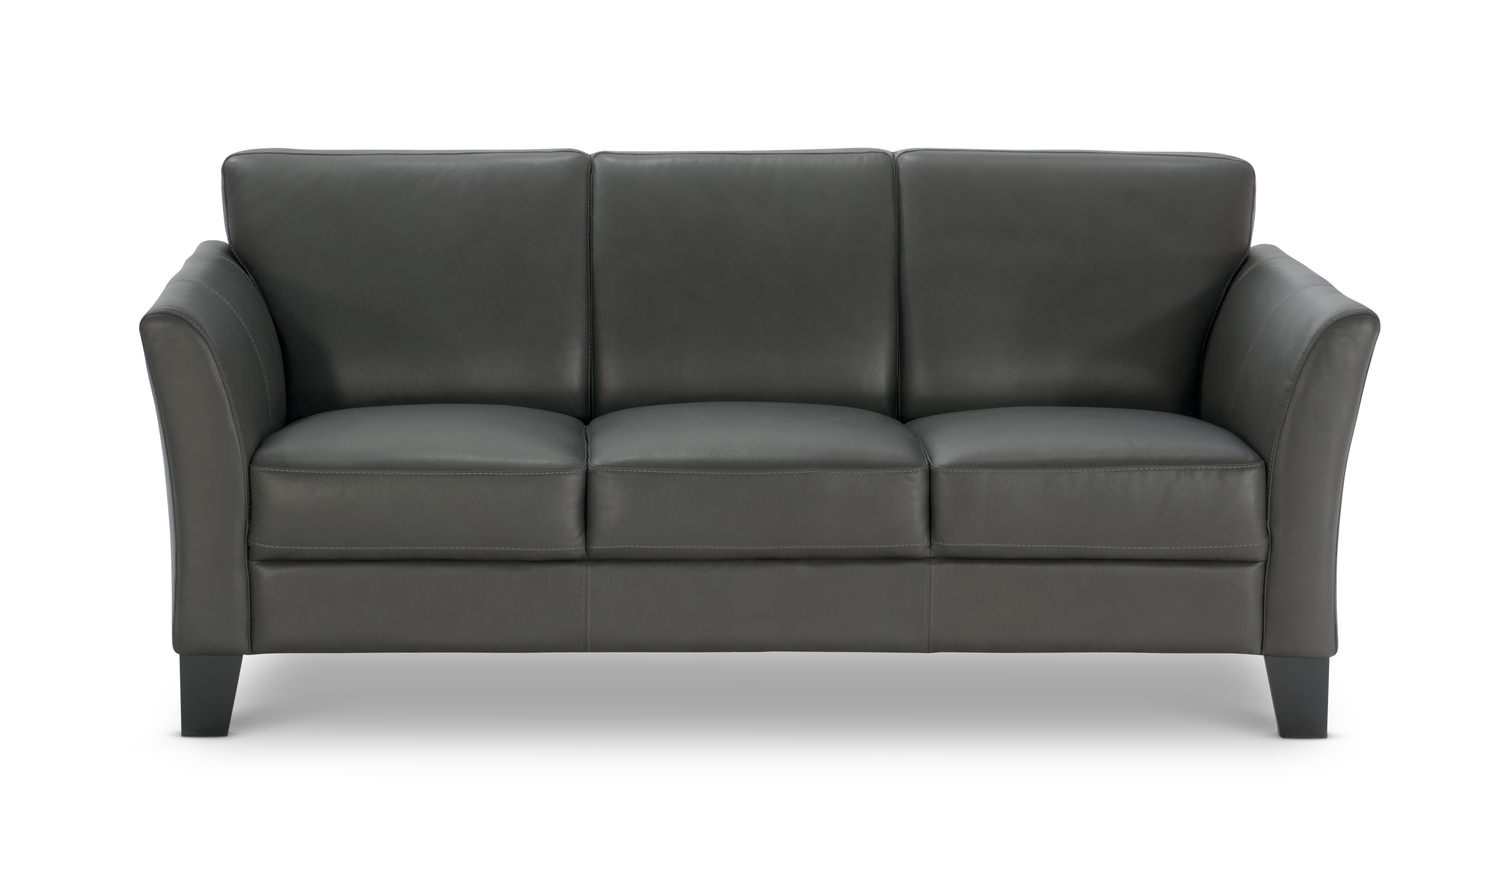 Benji Leather Sofa